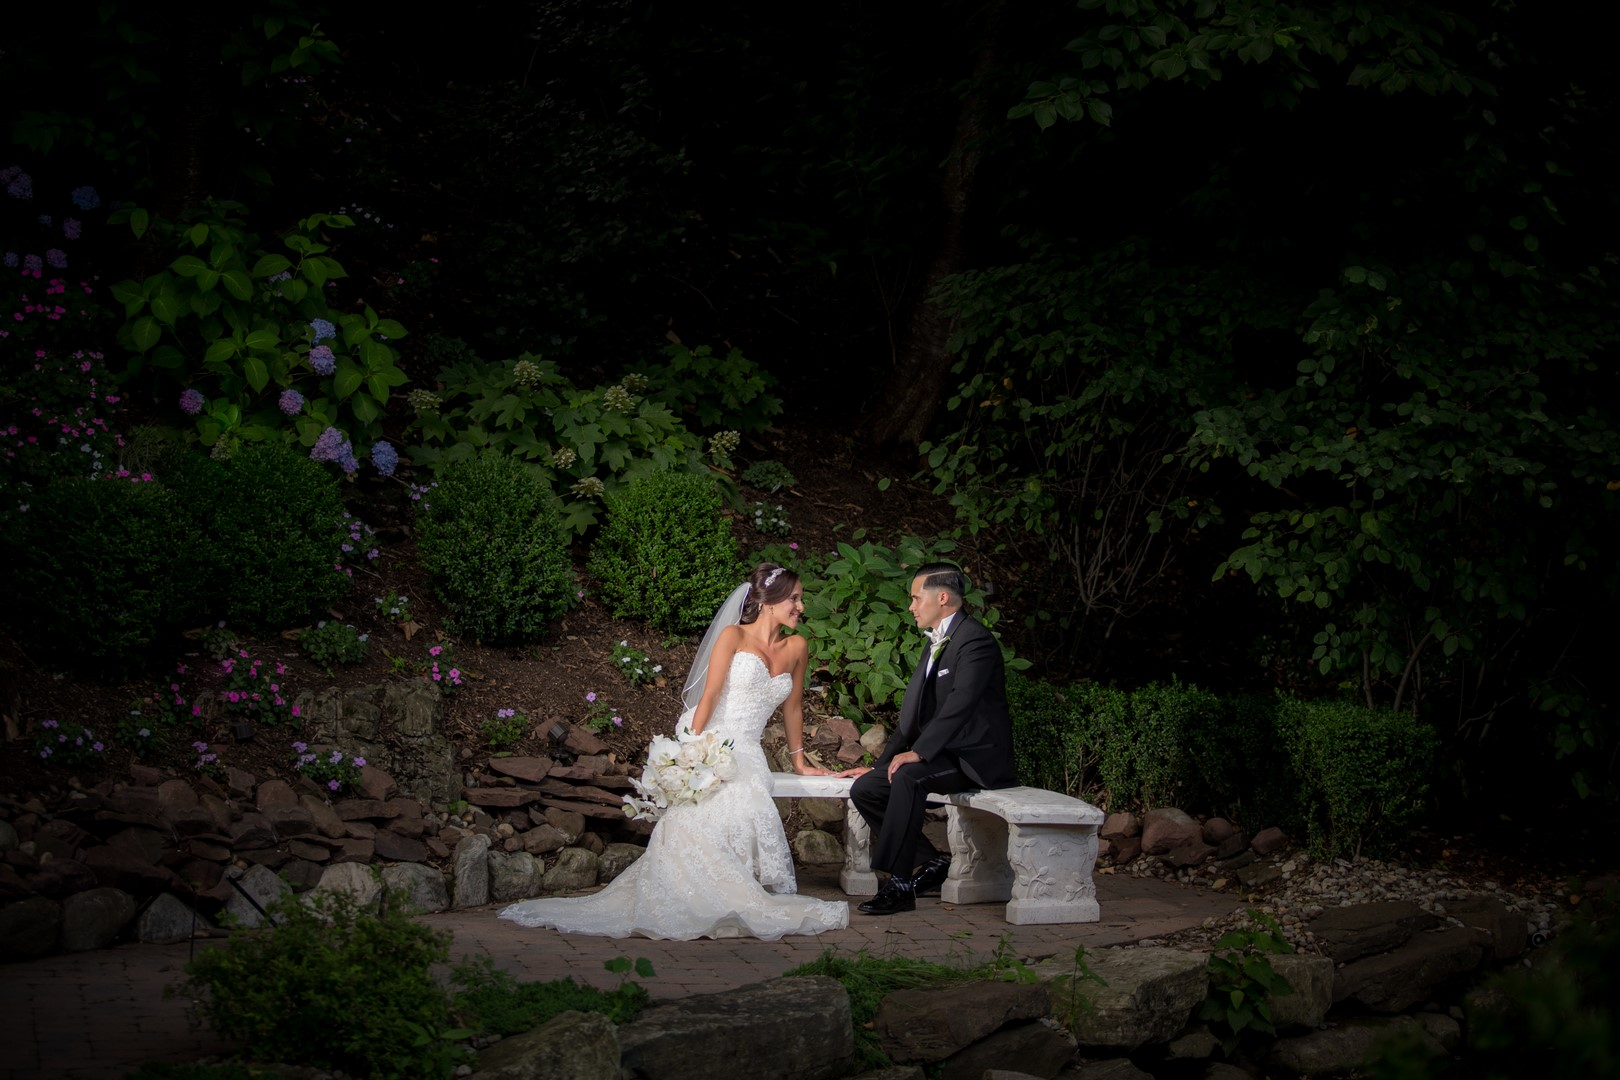 fine art wedding photography services